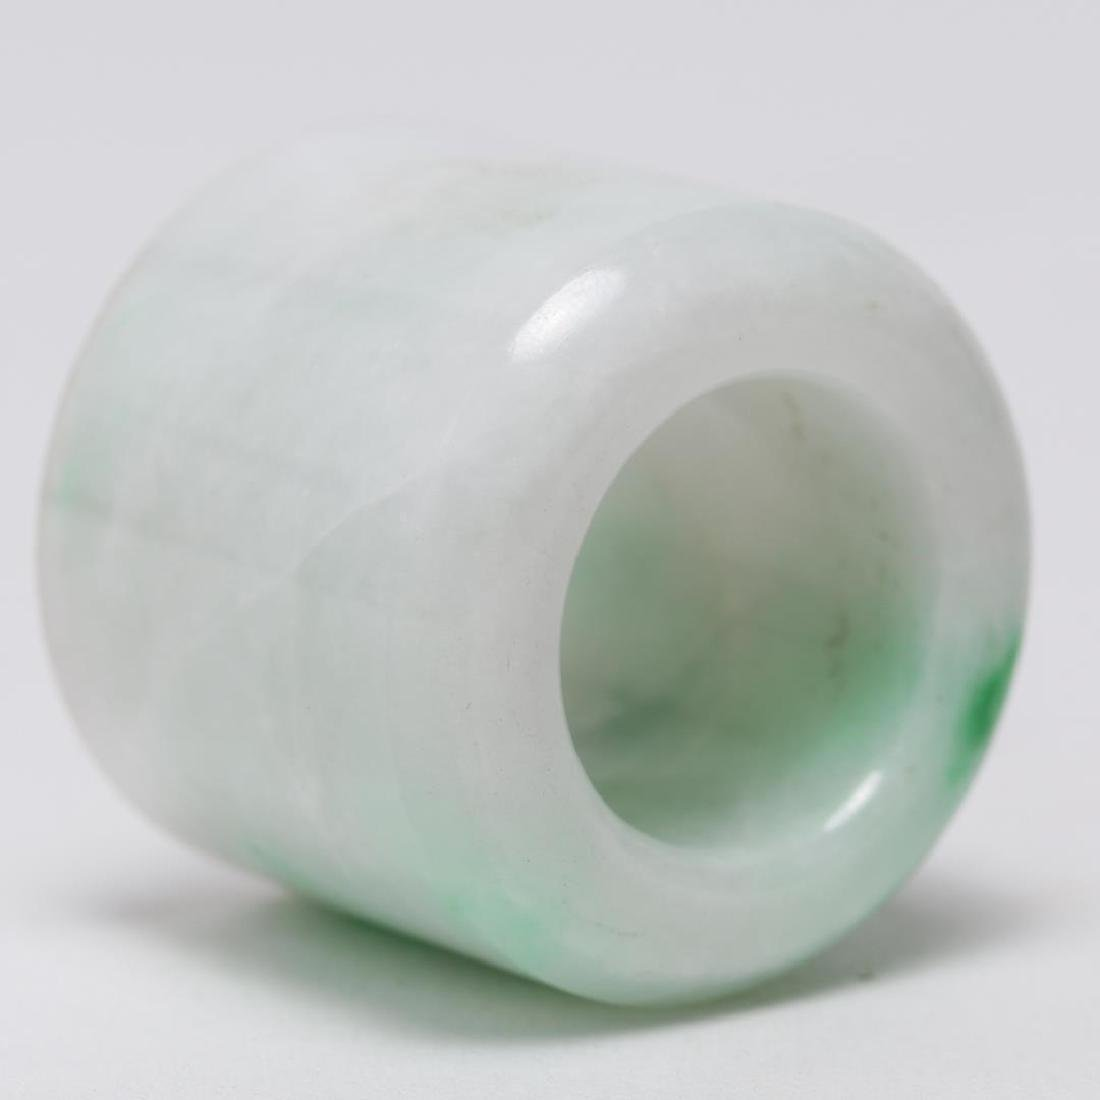 Chinese Mottled Jade Archer's or Thumb Ring, Man's - 5